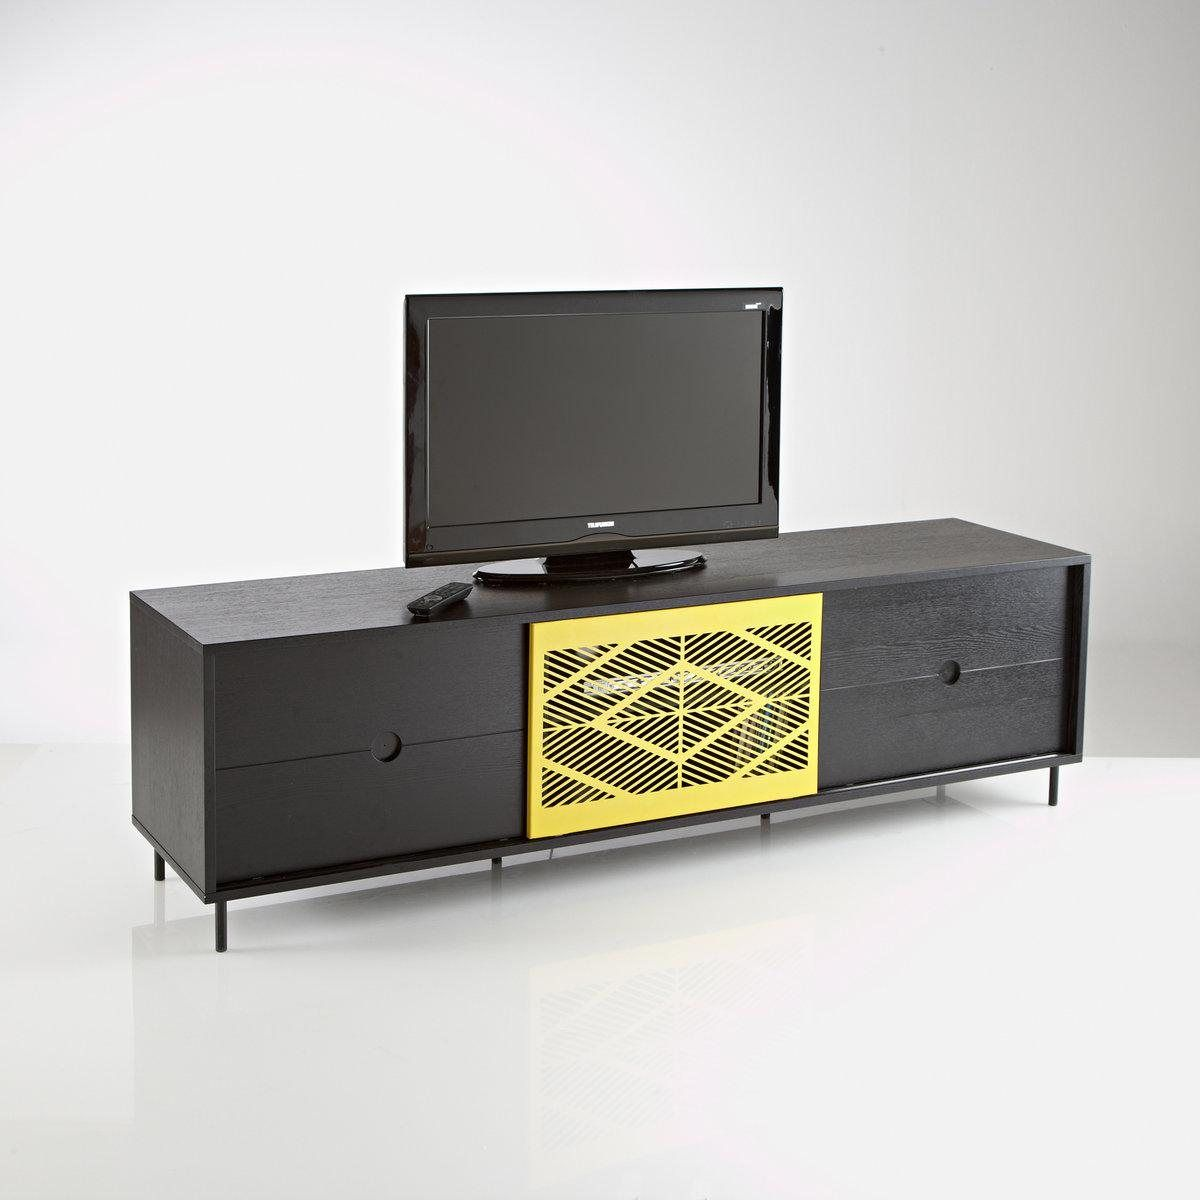 le banc tv ou buffet fran ois mangeol meubles et d co la redoute living room room et furniture. Black Bedroom Furniture Sets. Home Design Ideas